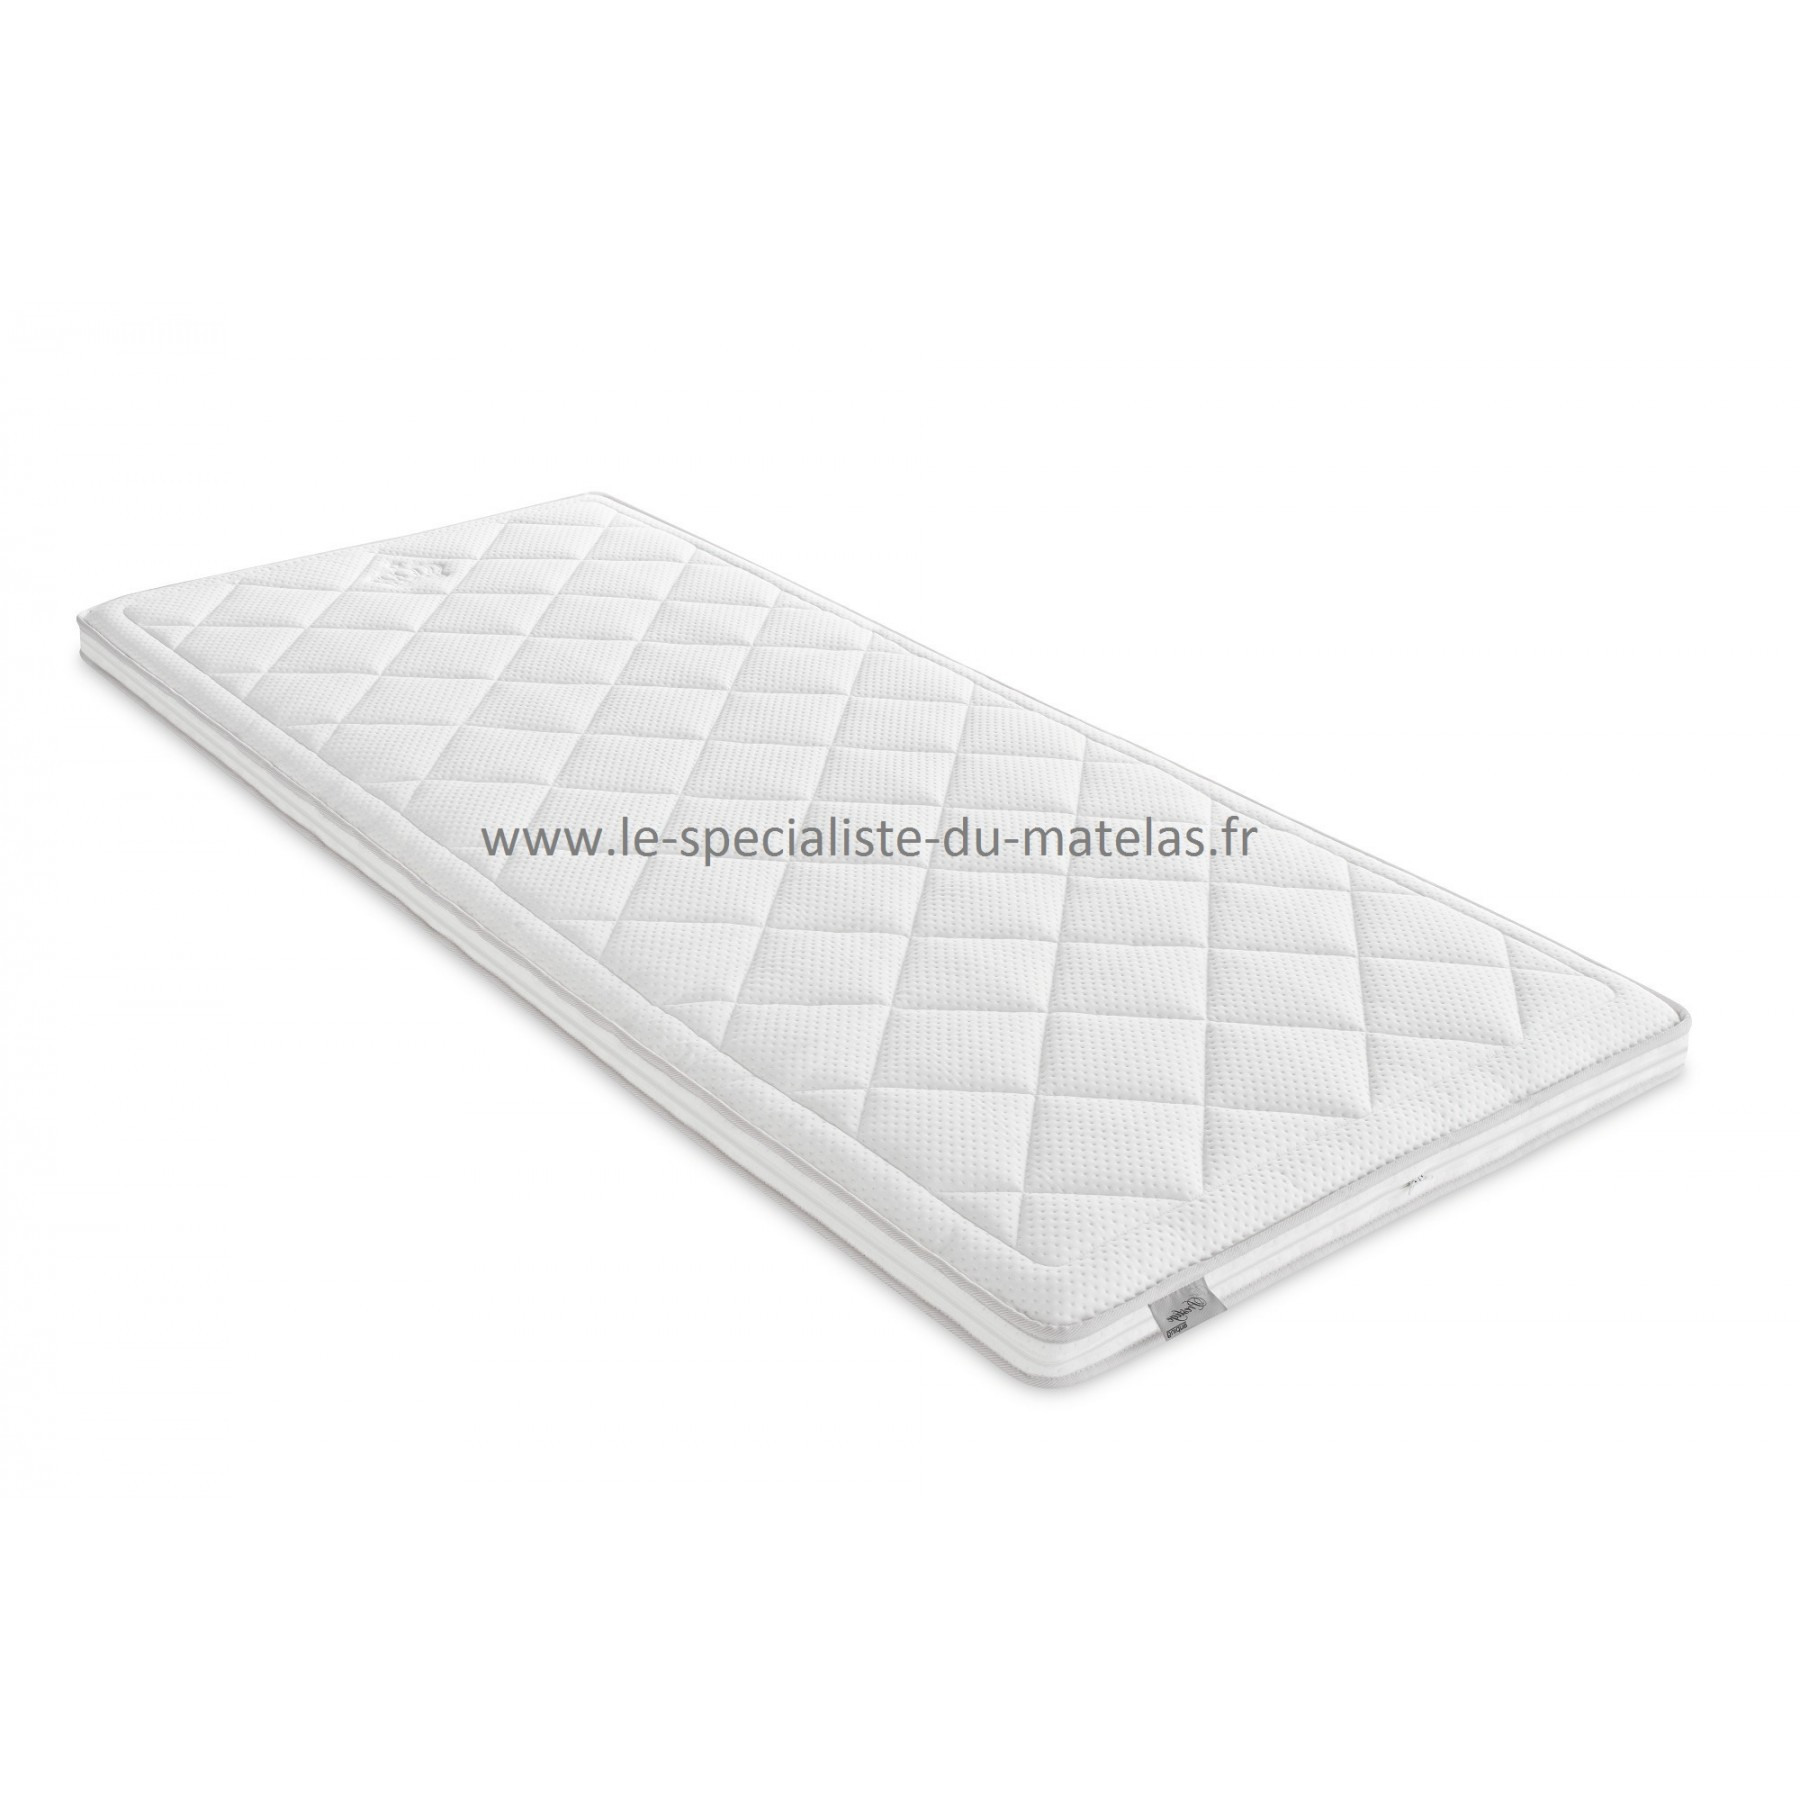 surmatelas auping prestige visco en mousse m moire de forme d couvrir au le sp cialiste du. Black Bedroom Furniture Sets. Home Design Ideas